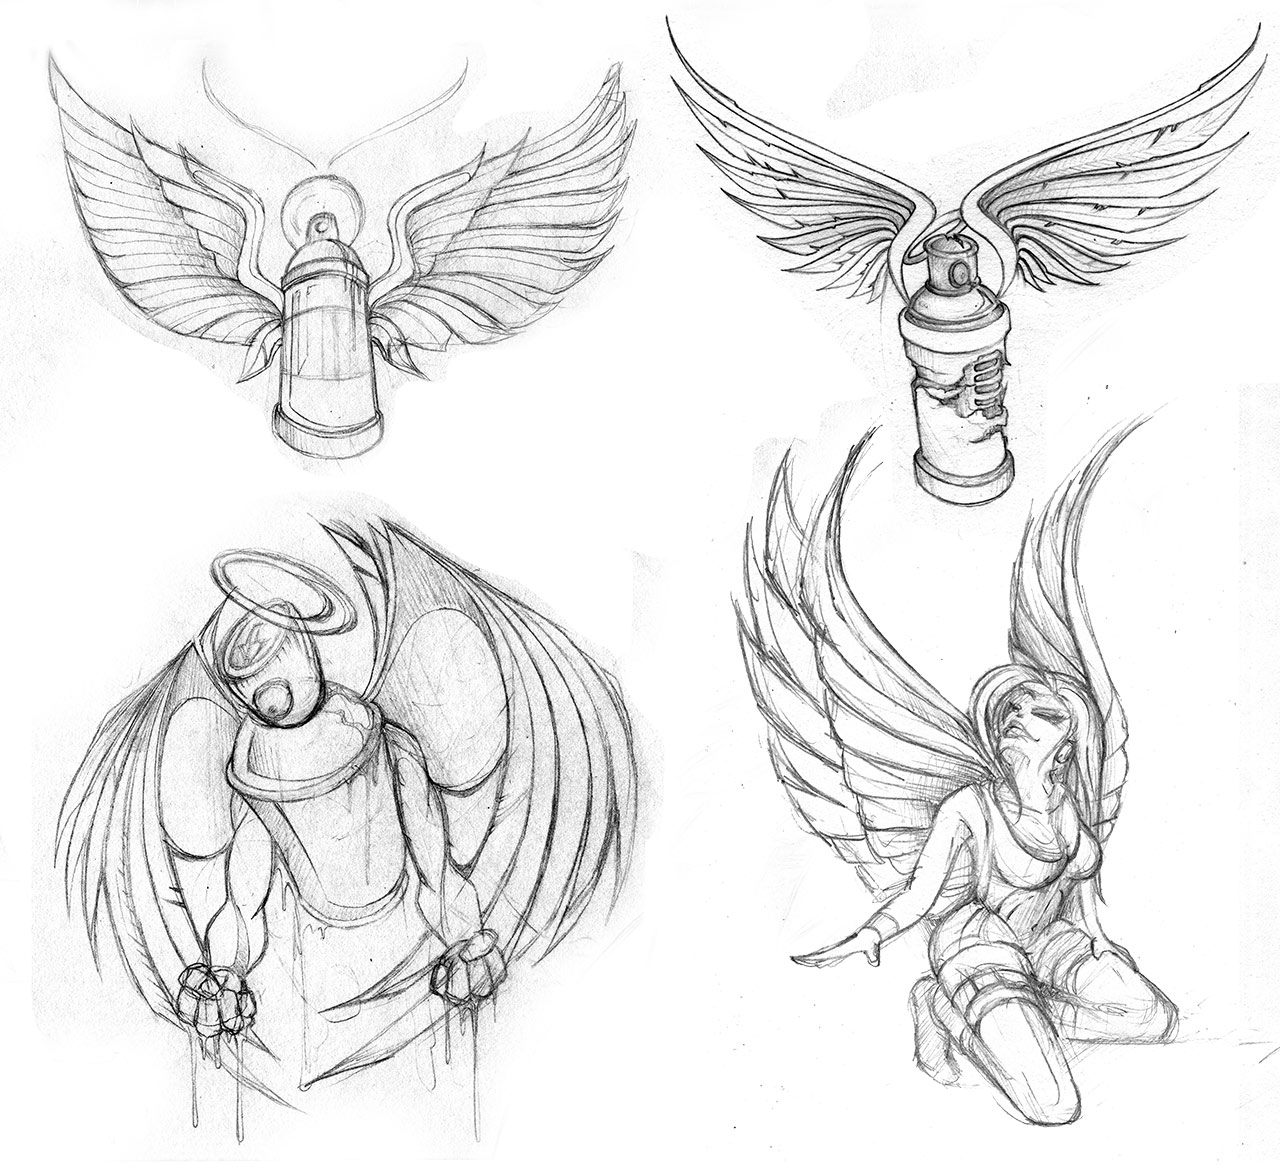 tiny pencil sketches of cans & angels & can-angels….